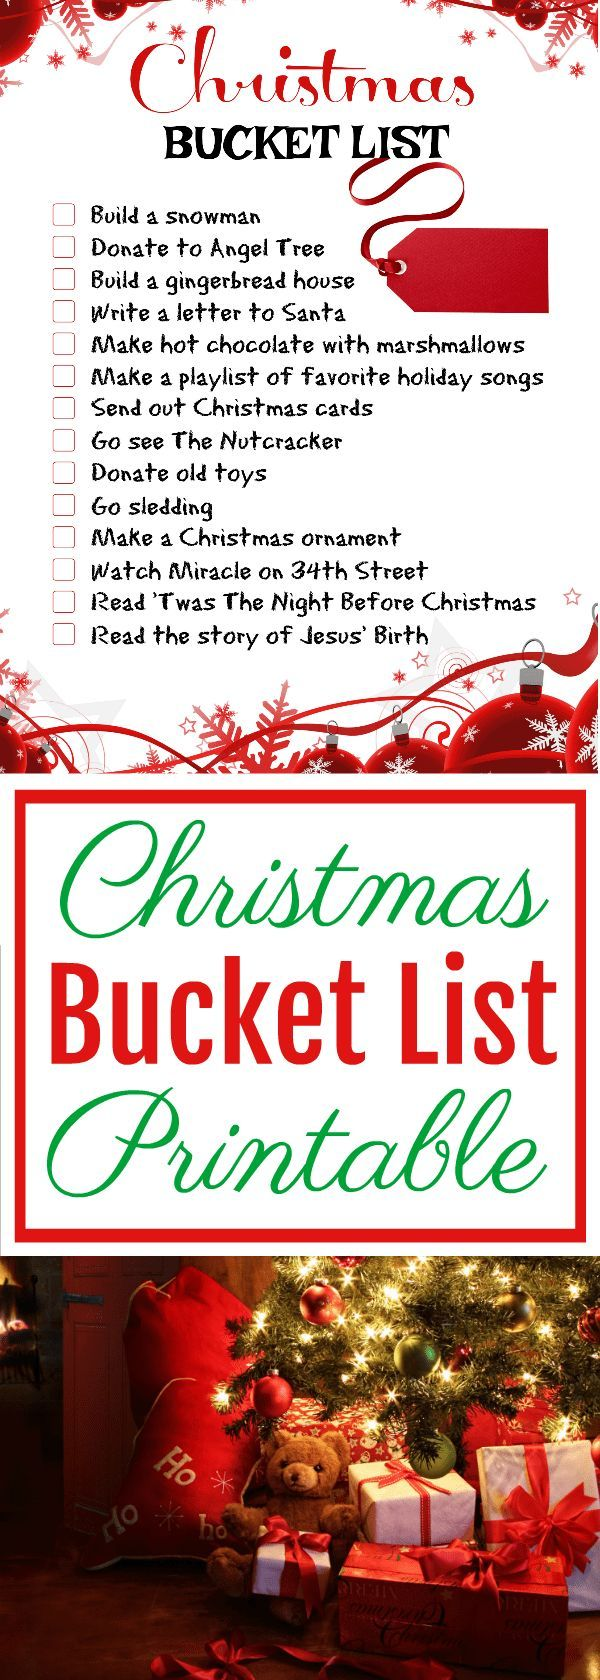 Take the time this busy Christmas season to enjoy all your favorite family holiday traditions and help stay on track with this free Christmas Bucket List printable!